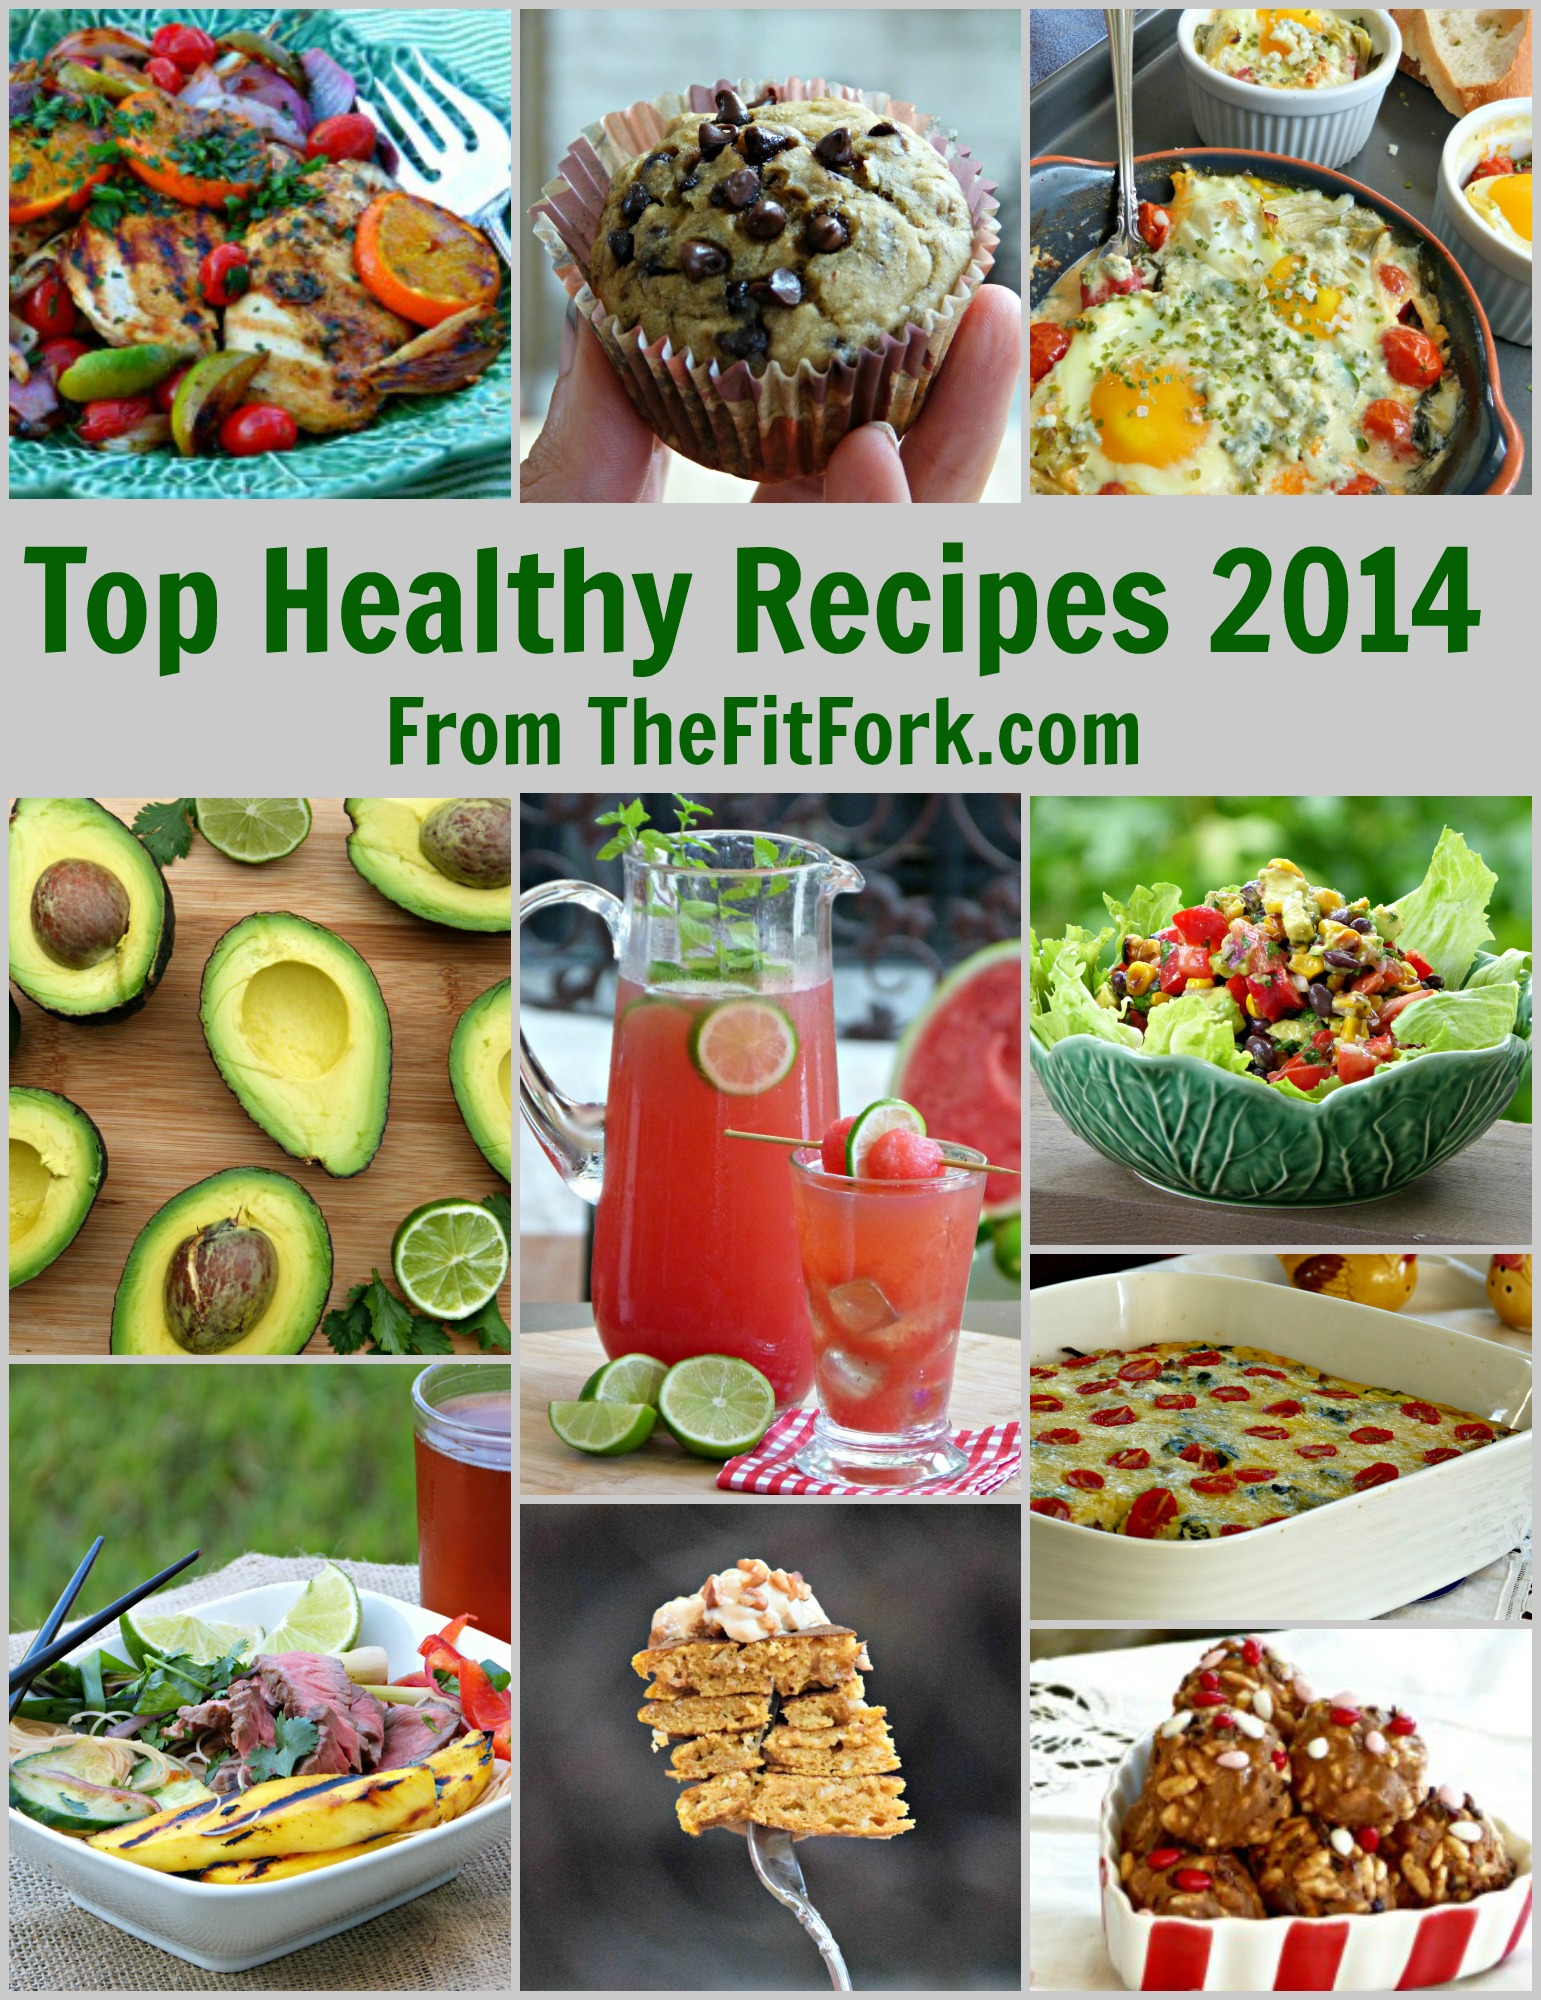 Top Healthy Recipes of 2014 from TheFitFork.com